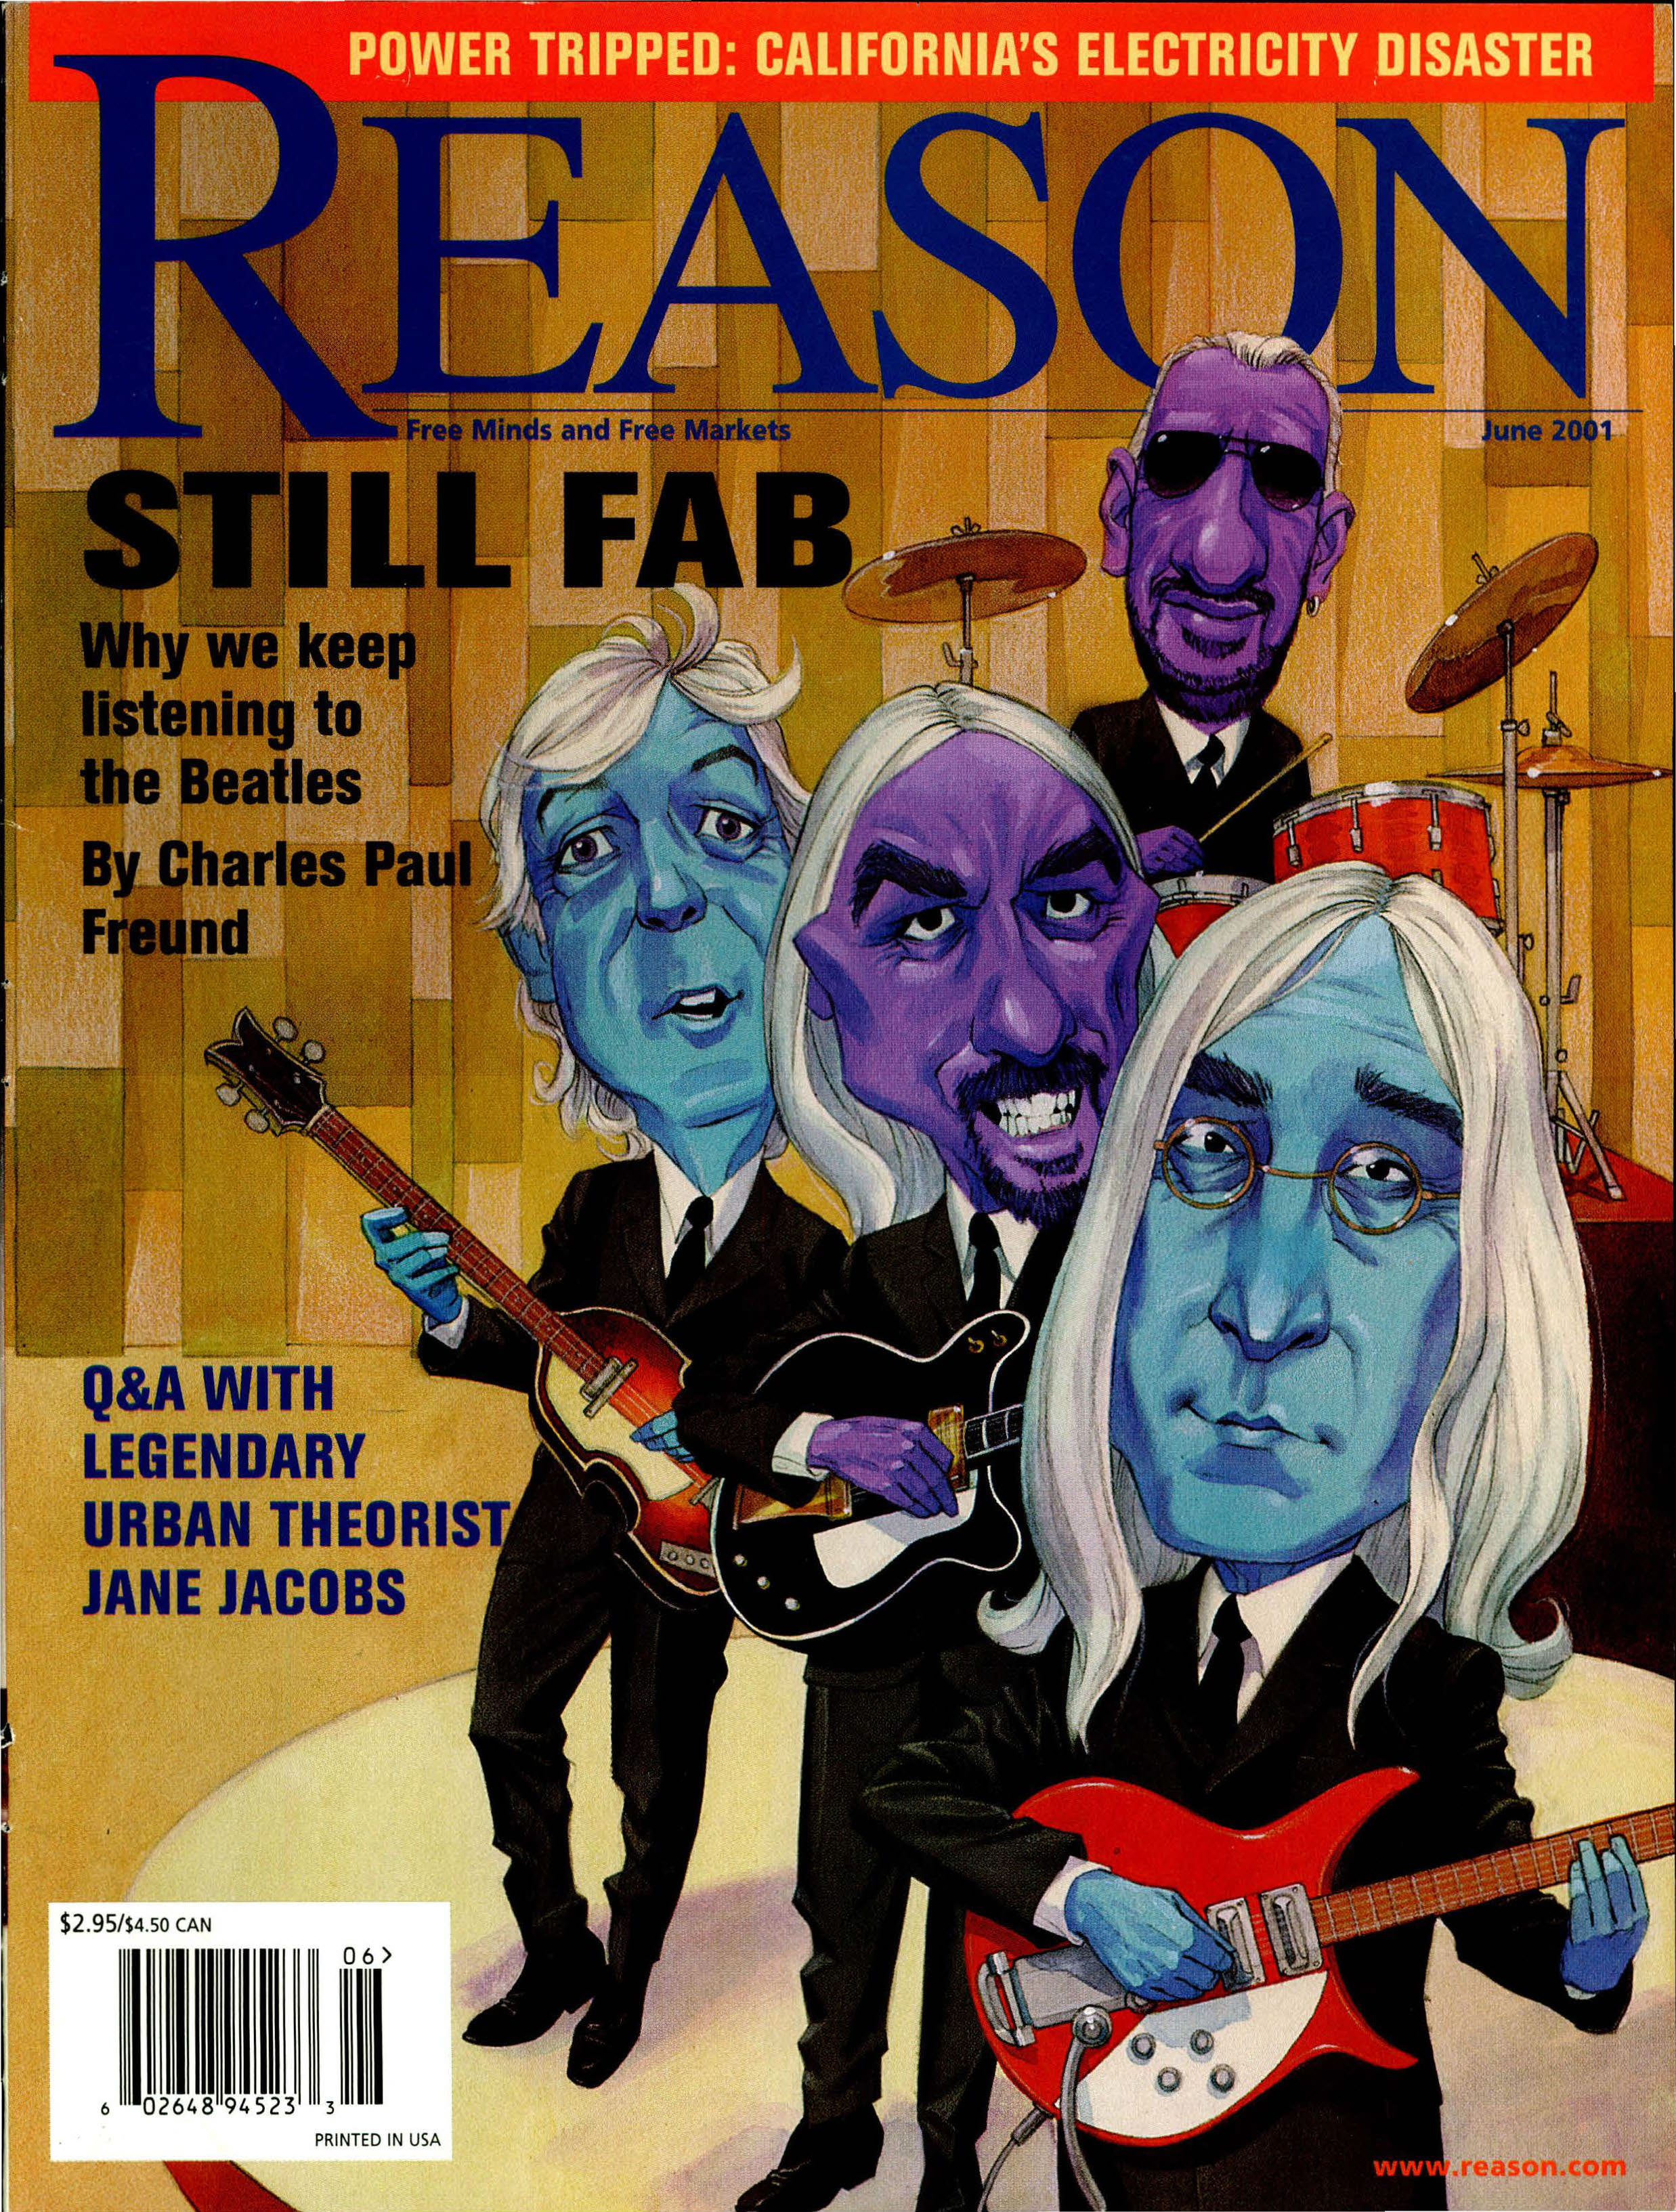 Reason Magazine, June 2001 cover image